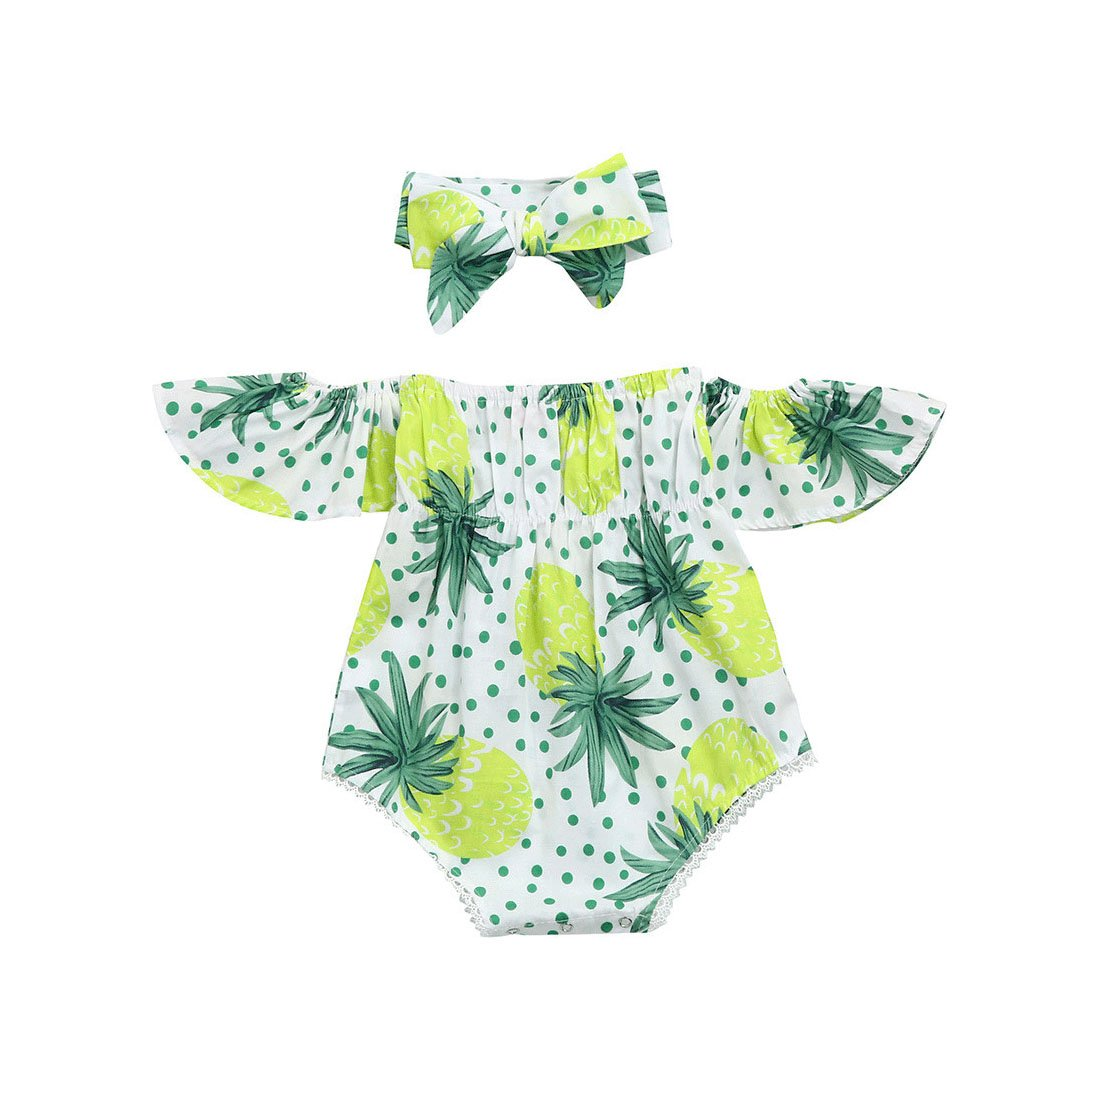 7b07a7a5c Molyveva Baby Girls Pineapple Print Ruffles Romper Summer Clothes ...